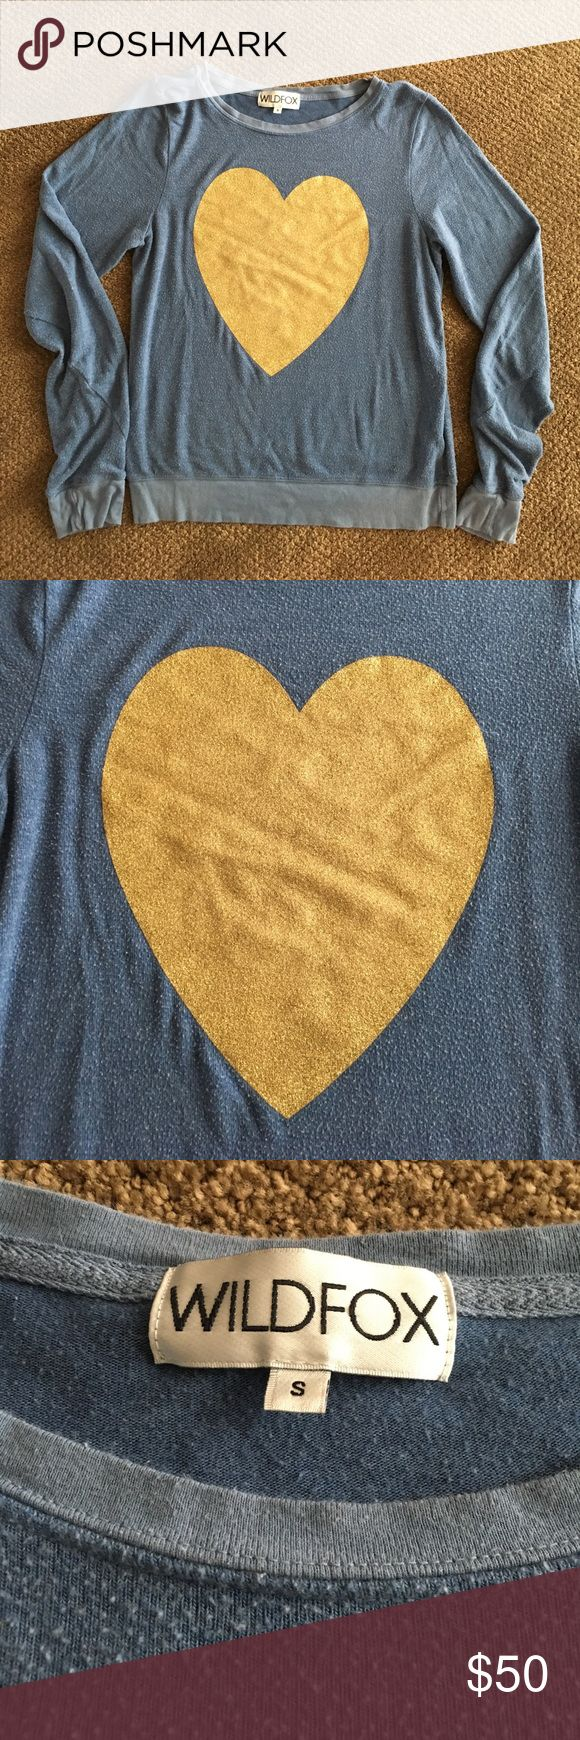 🆕Wildfox Heart Sweatshirt Light blue sweatshirt w gold glitter heart. Some wear but material natural pils (look of these sweatshirts. Made of rayon, spandex and polyester. Pet & smoke free home. Wildfox Tops Sweatshirts & Hoodies